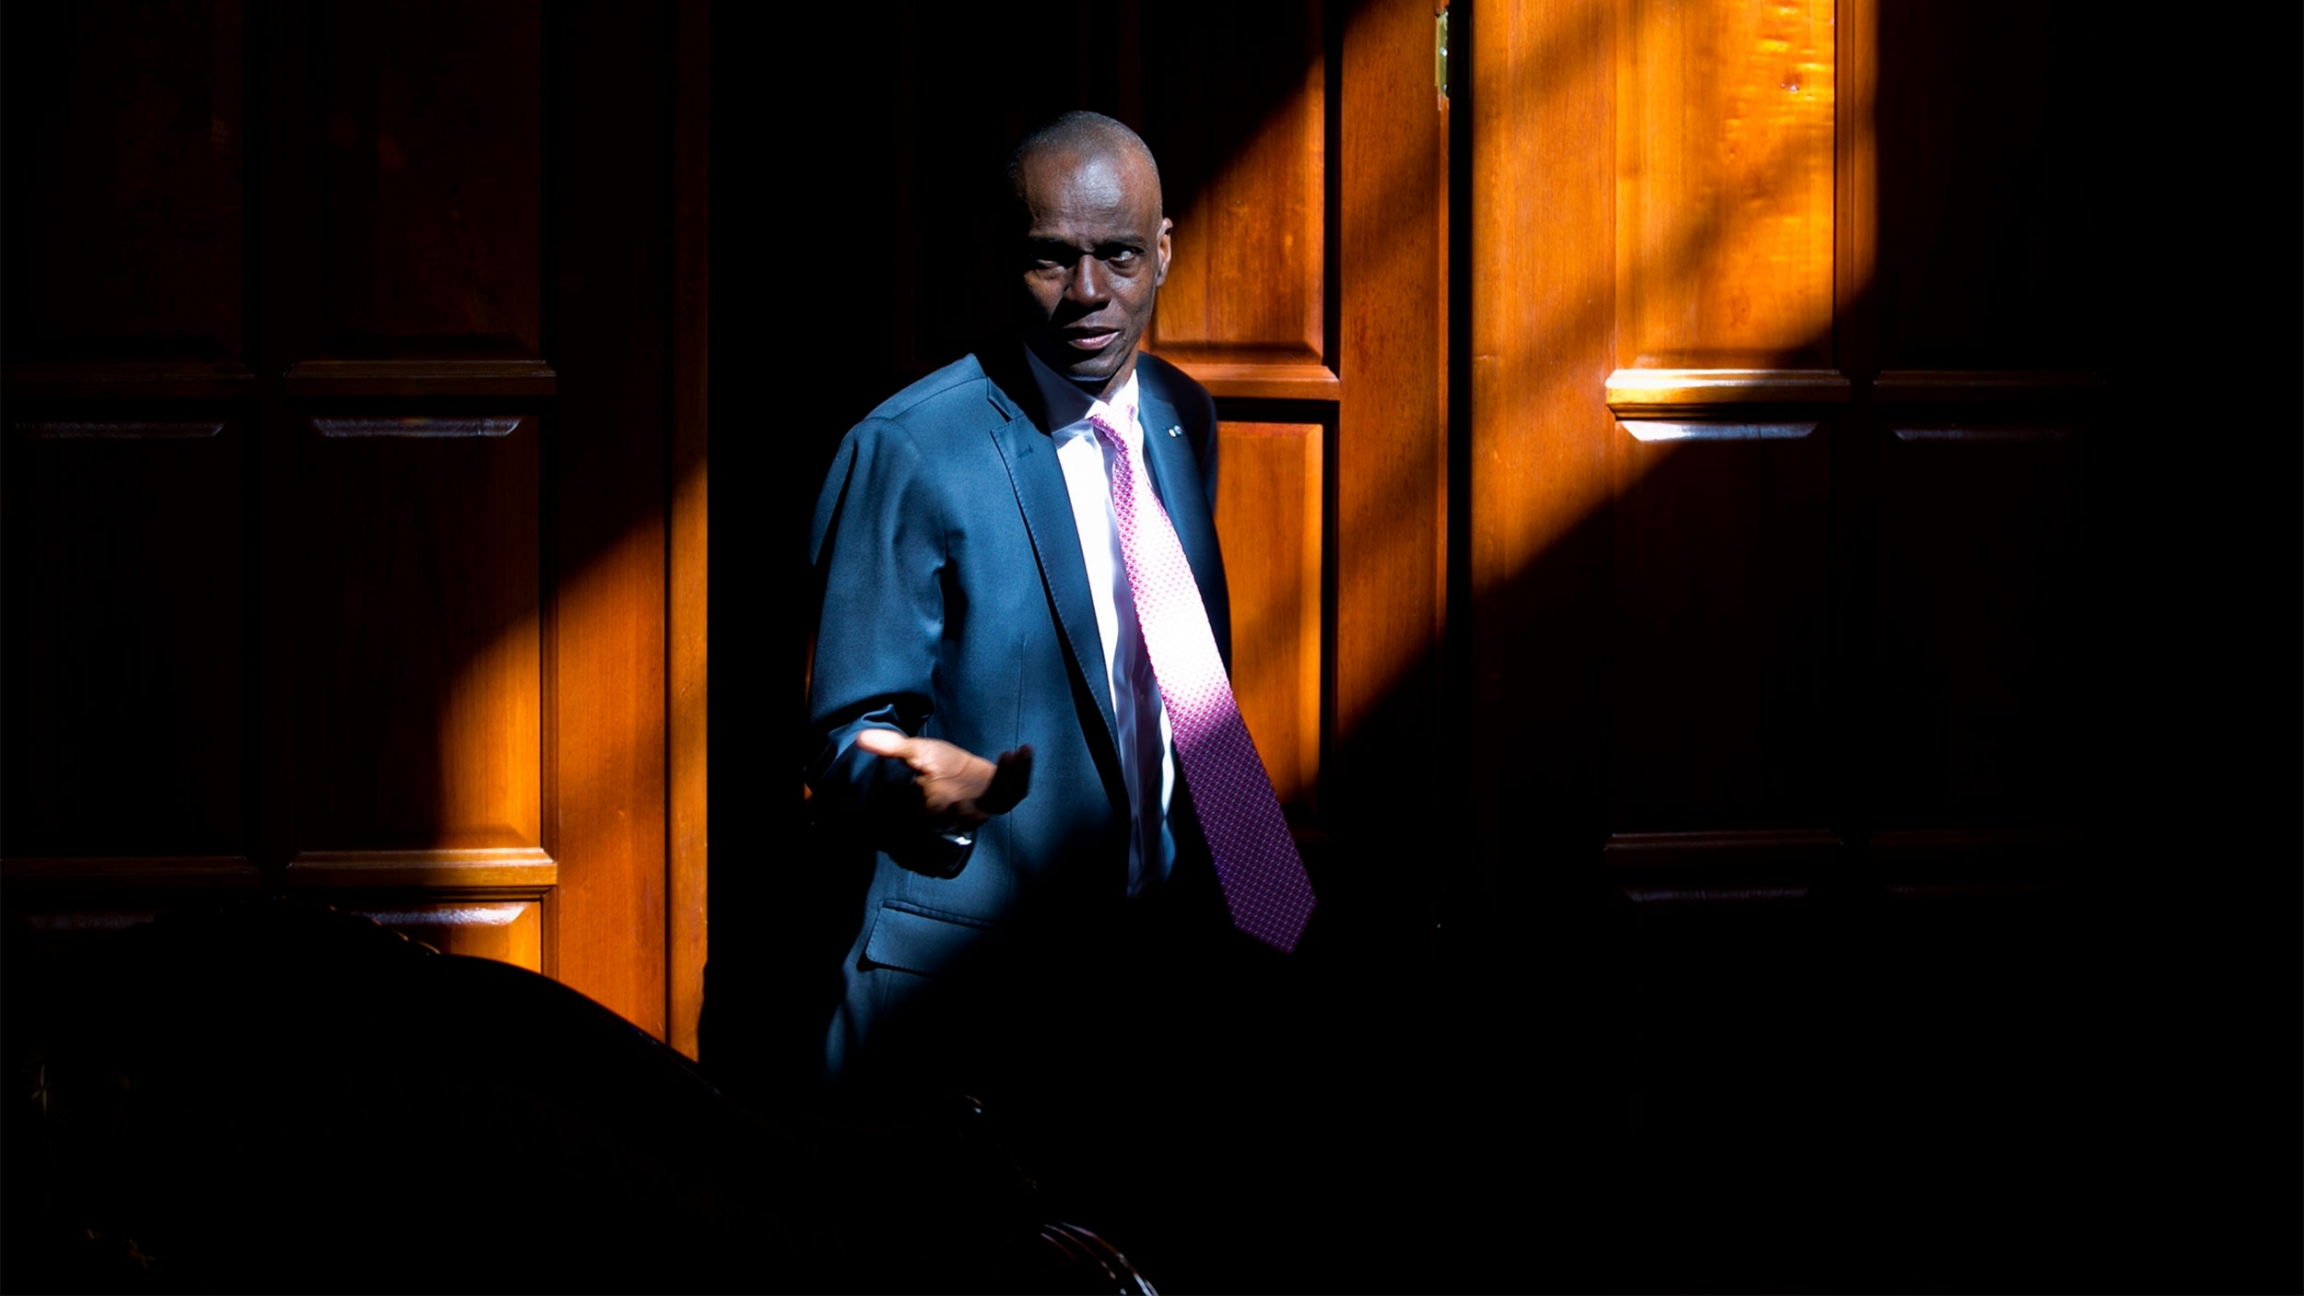 Haitian President Jovenel Moise arrives for an interview at his home in Petion-Ville, a suburb of Port-au-Prince, Haiti